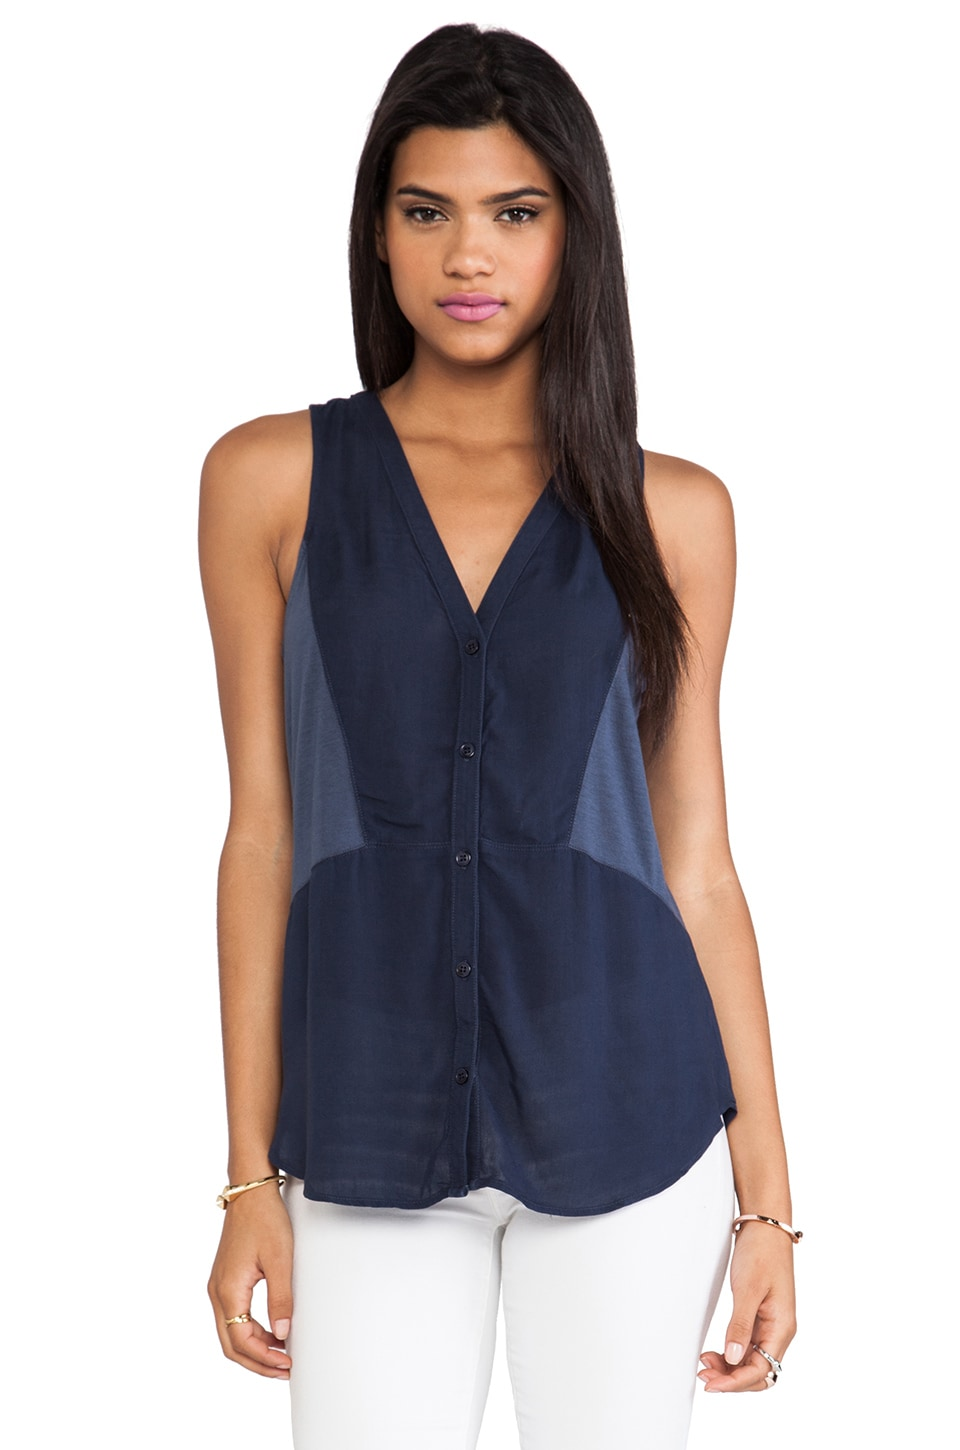 Splendid Always Shirting Tank in Navy